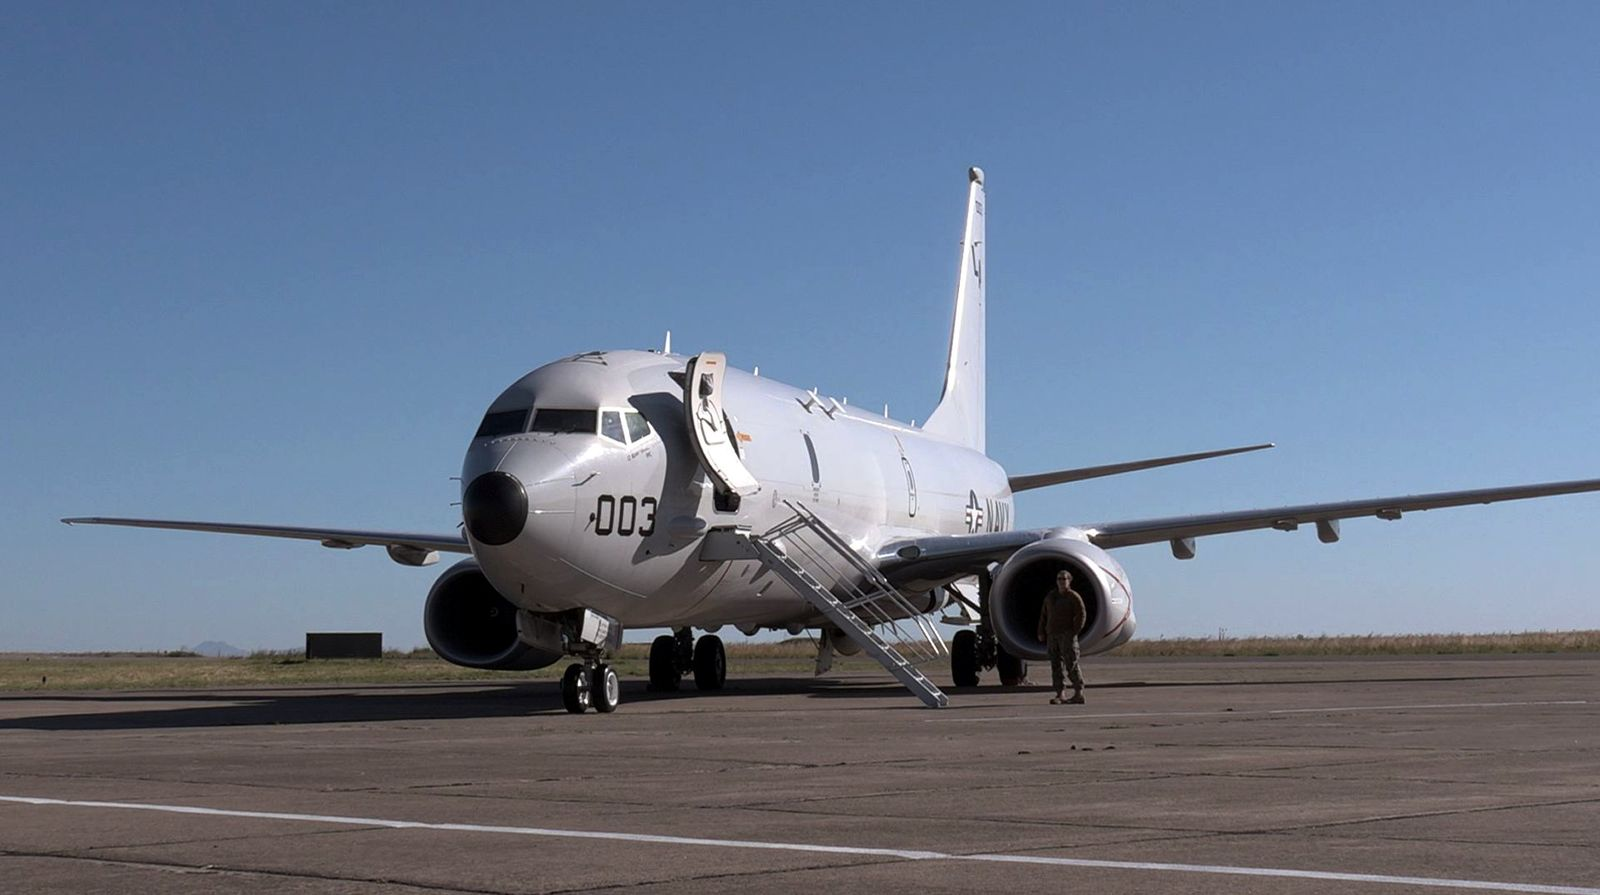 A member of the U.S. Navy stands next to the Boeing P-8A Poseidon plane before its departure to take part in the search for the ARA San Juan submarine missing at sea, at a military air base in Bahia Blanca